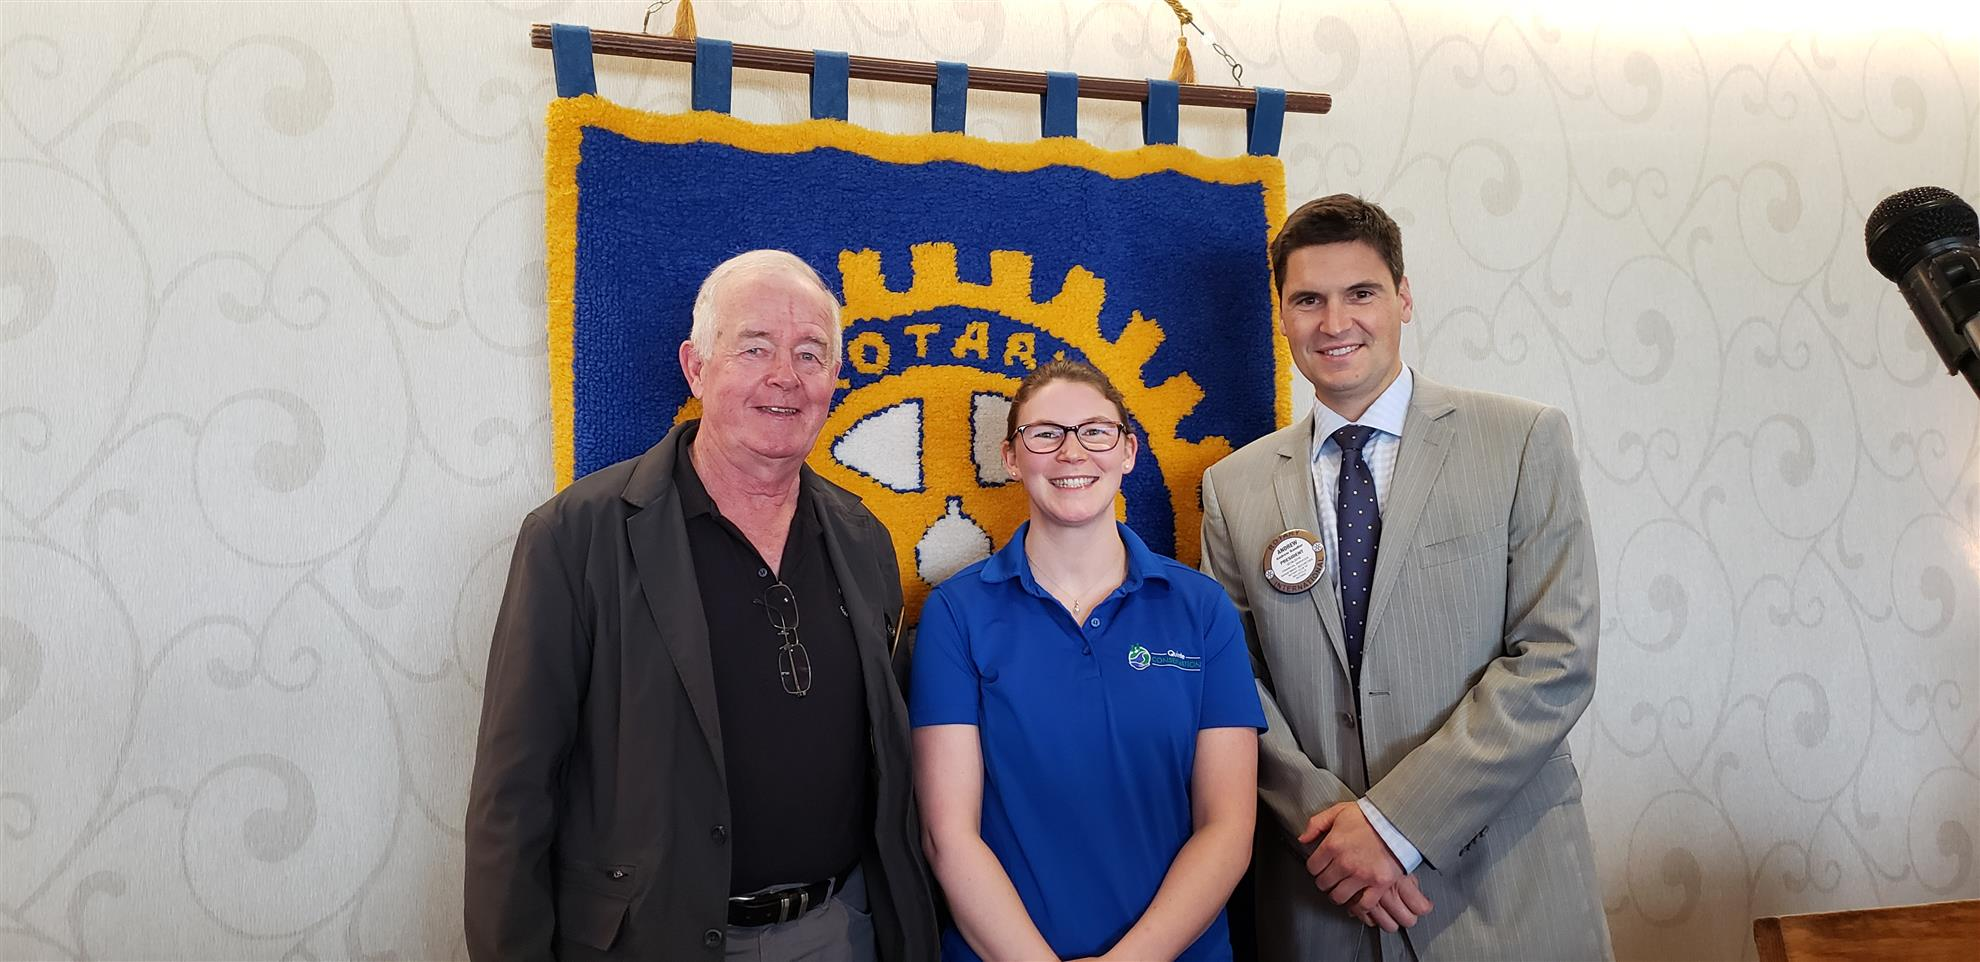 Stories | Rotary Club of Belleville